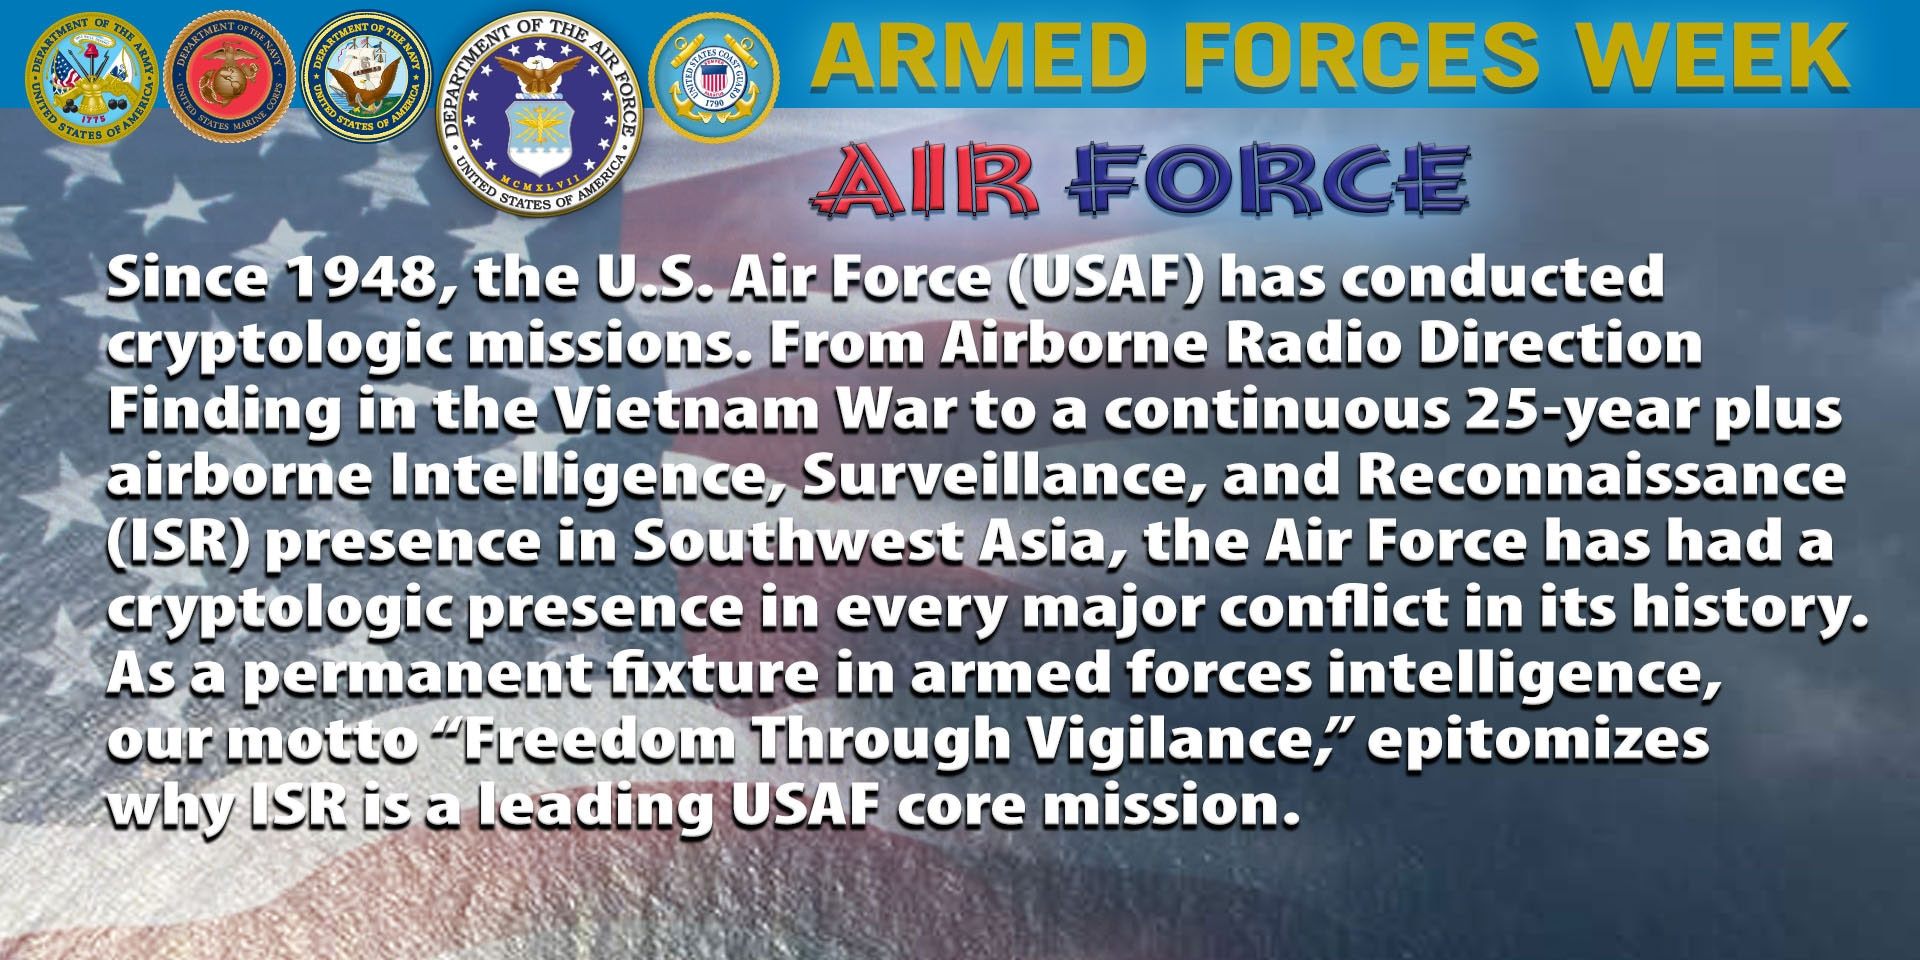 """Since 1948, the Air Force has conducted cryptologic missions. From Airborne Radio Direction Finding in the Vietnam War to a continuous 25-year plus airborne Intelligence Surveillance and Reconnaissance (ISR) presence in Southwest Asia, the Air Force has had a cryptologic presence in every major conflict in its history. As a permanent fixture in the armed forces intelligence organization, our motto """"Freedom Through Vigilance,"""" epitomizes why ISR is a leading USAF core mission."""